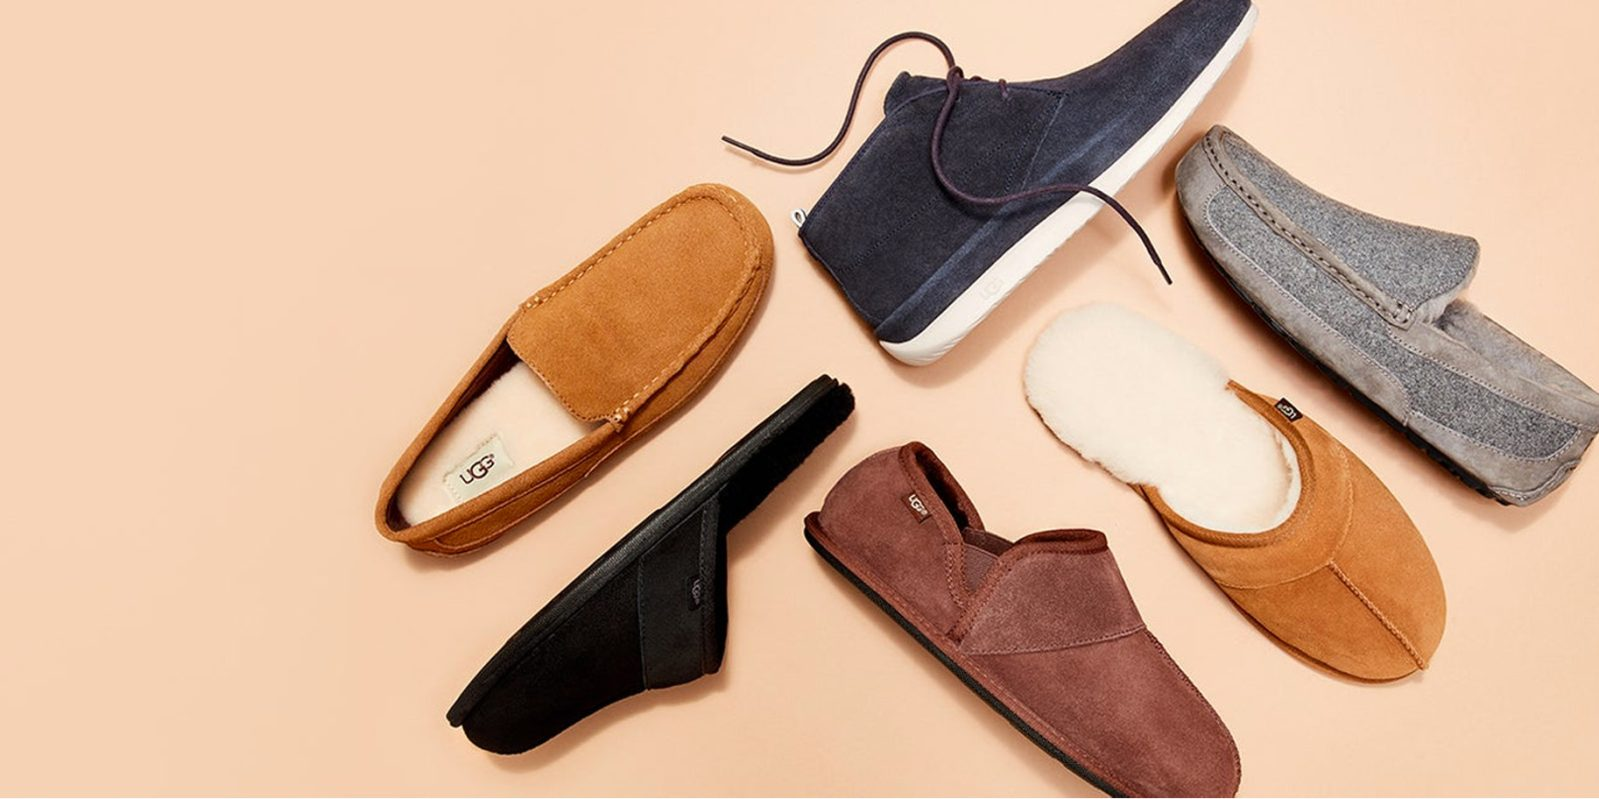 UGG's Holiday Sale offers up to 30% off popular boots, slippers, pajamas, more